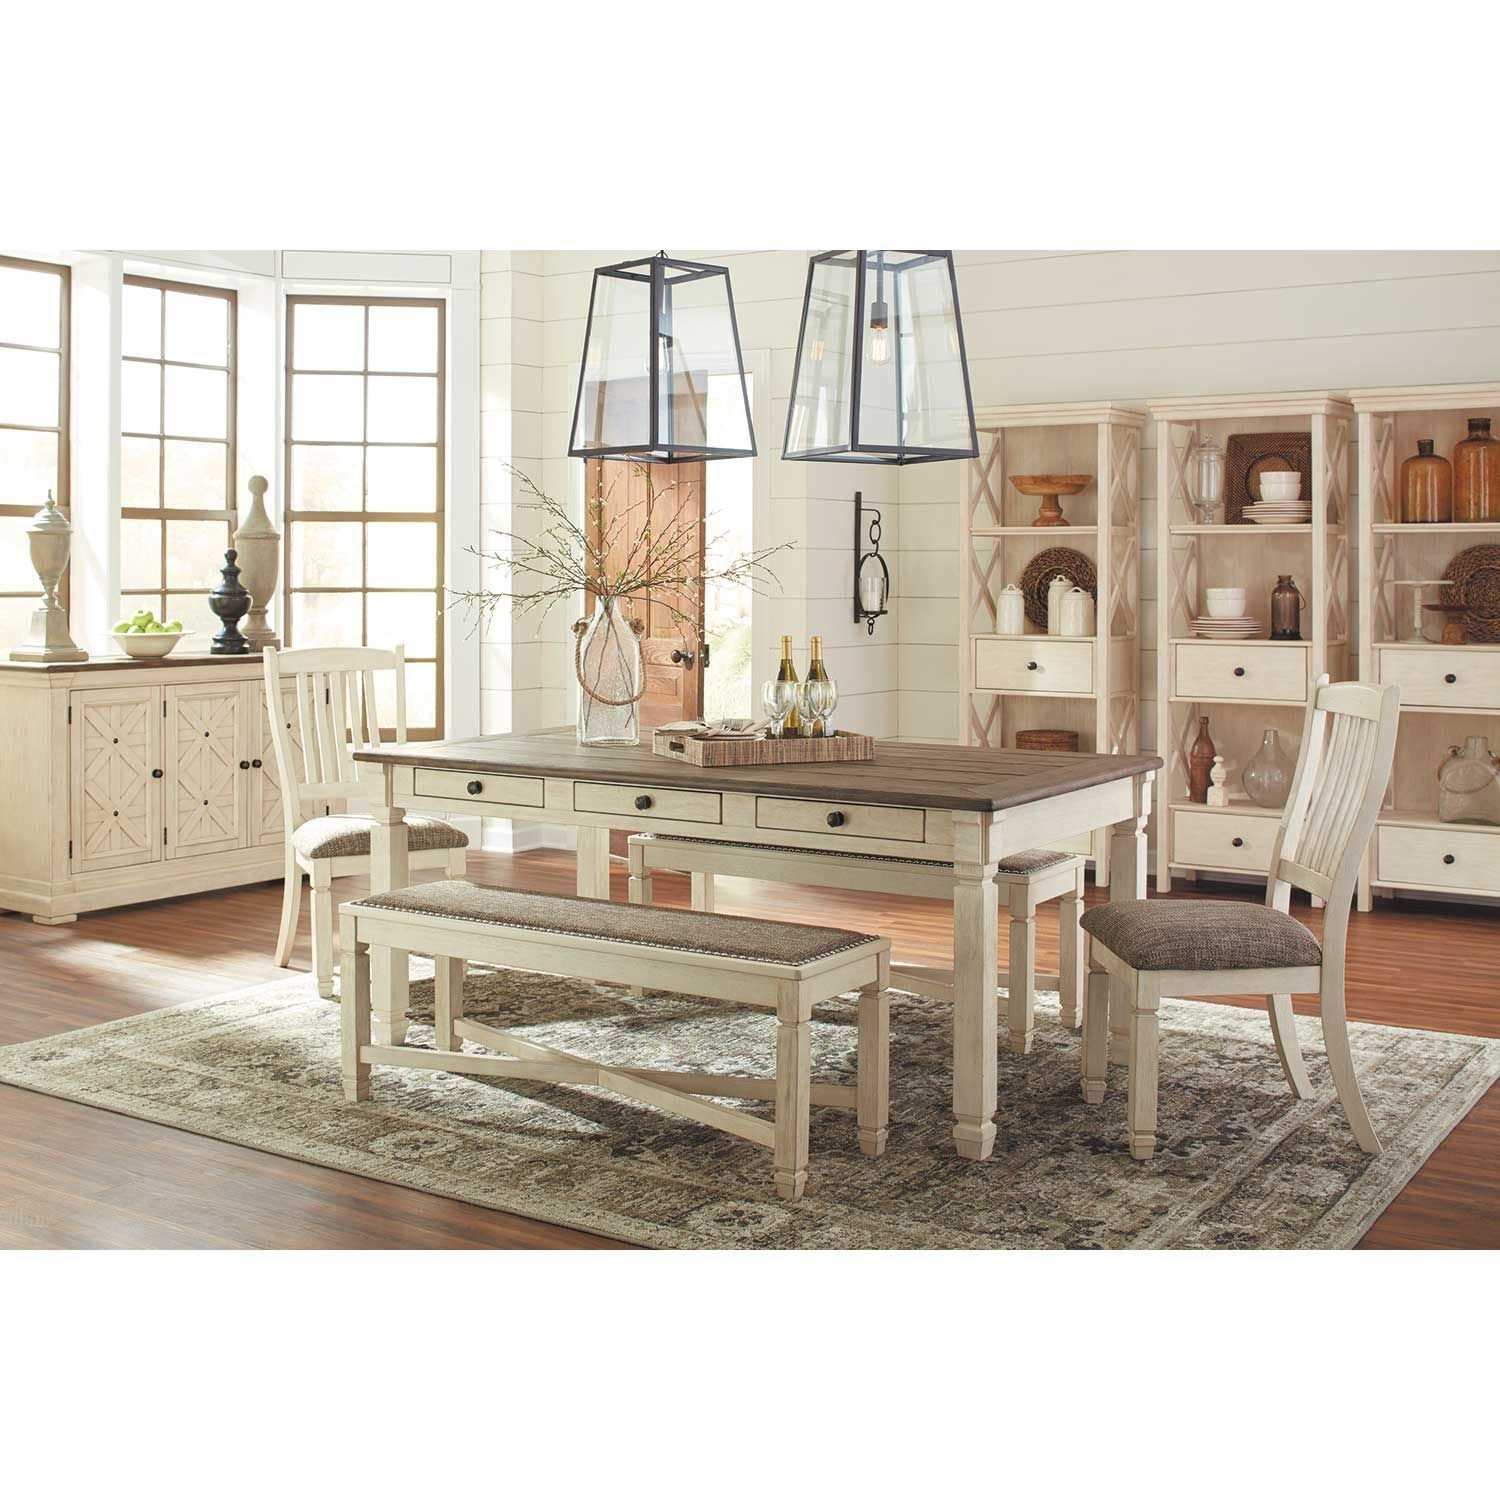 Bolanburg Rectangular Dining Table D647 25 | Ashley Furniture | Afw With Most Popular Market 6 Piece Dining Sets With Host And Side Chairs (Image 6 of 20)